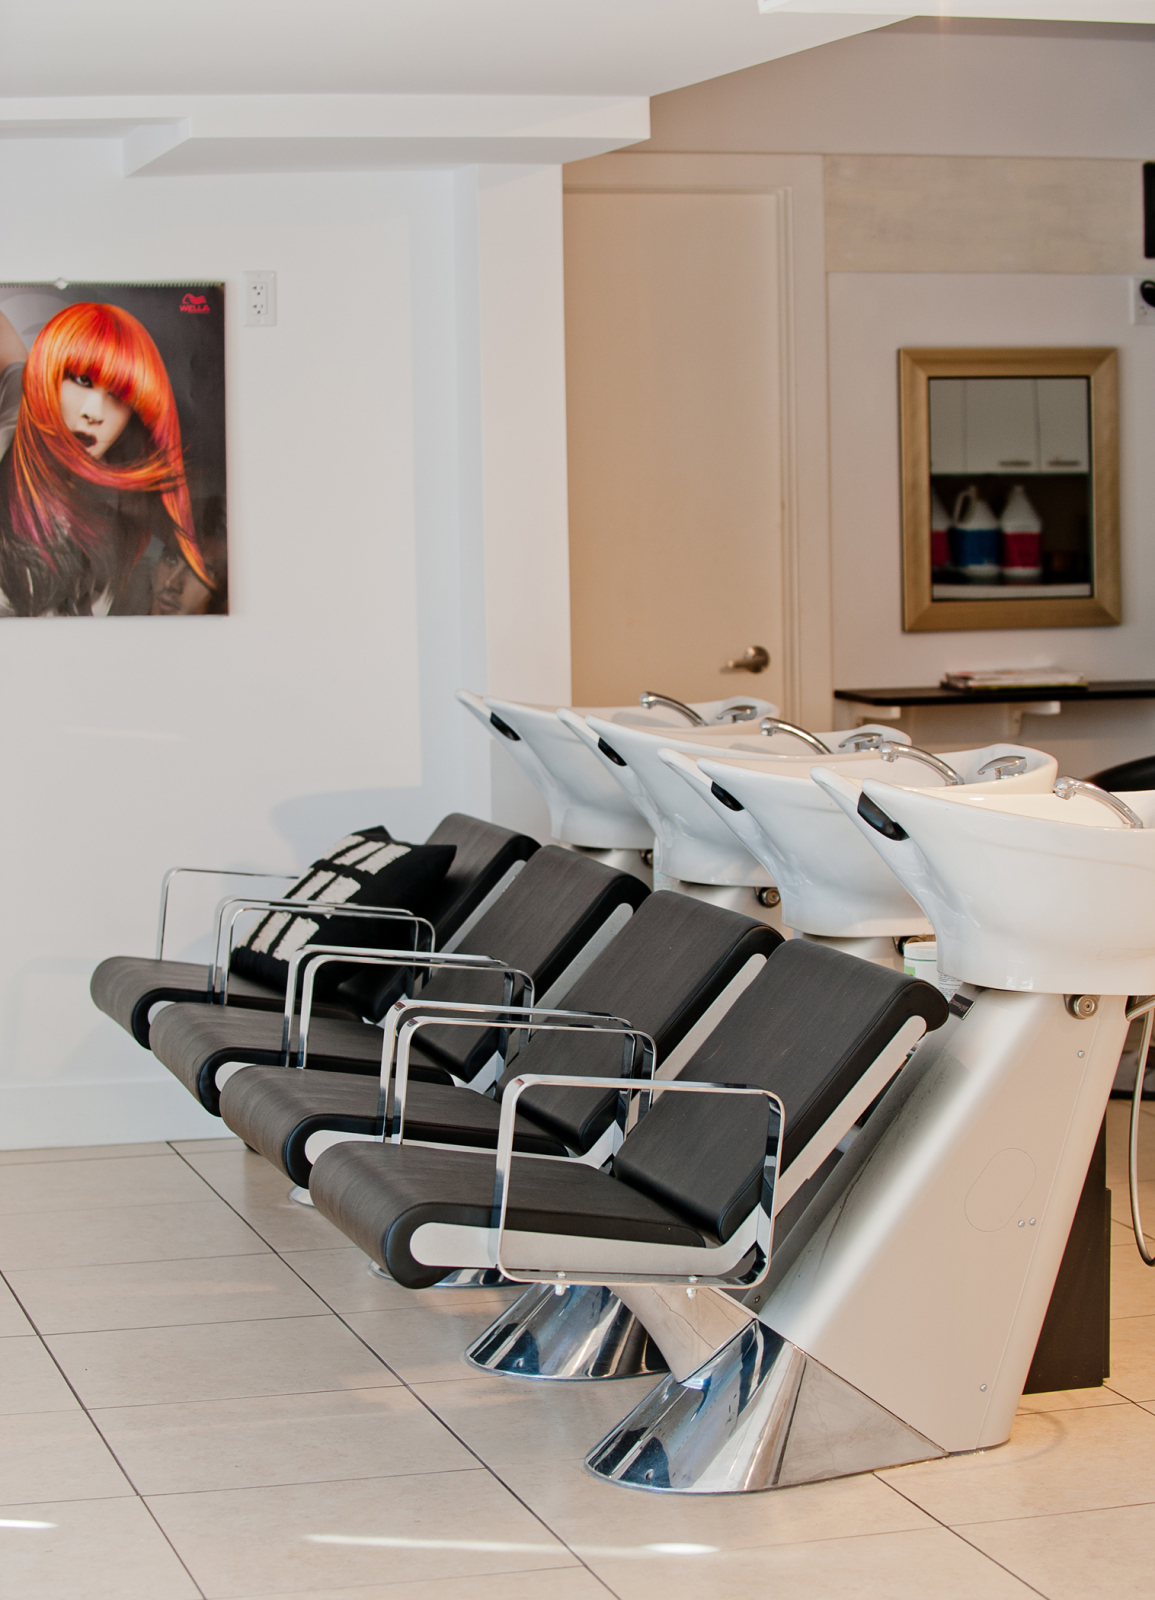 Halifax, Hair Salons, Reviews, Best places to get your hair cut in halifax, beauty, haircuts, halifax, city,